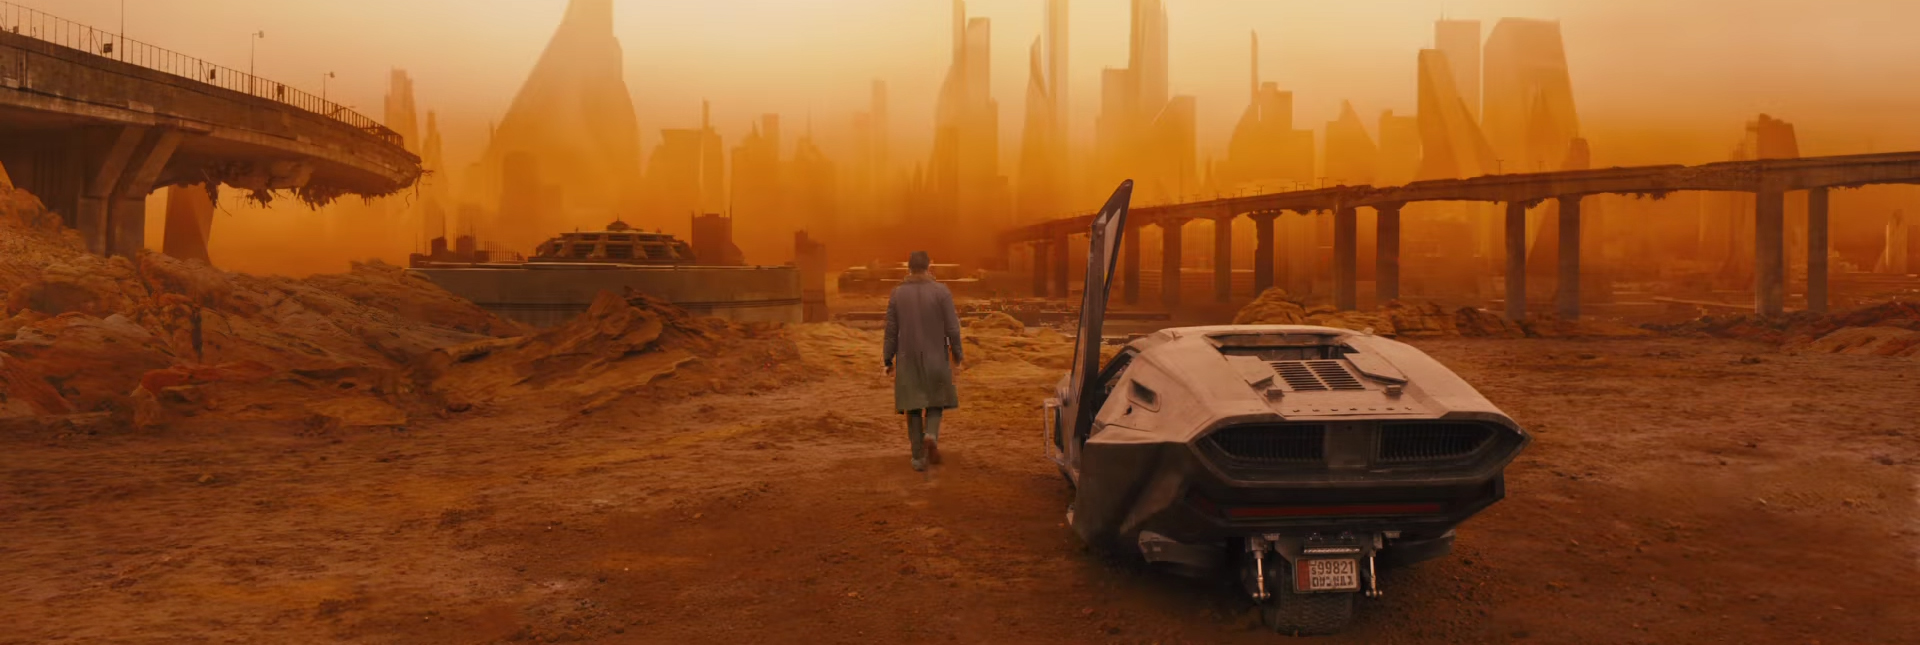 Blade Runner 2049. Image Credit: Warner Bros.